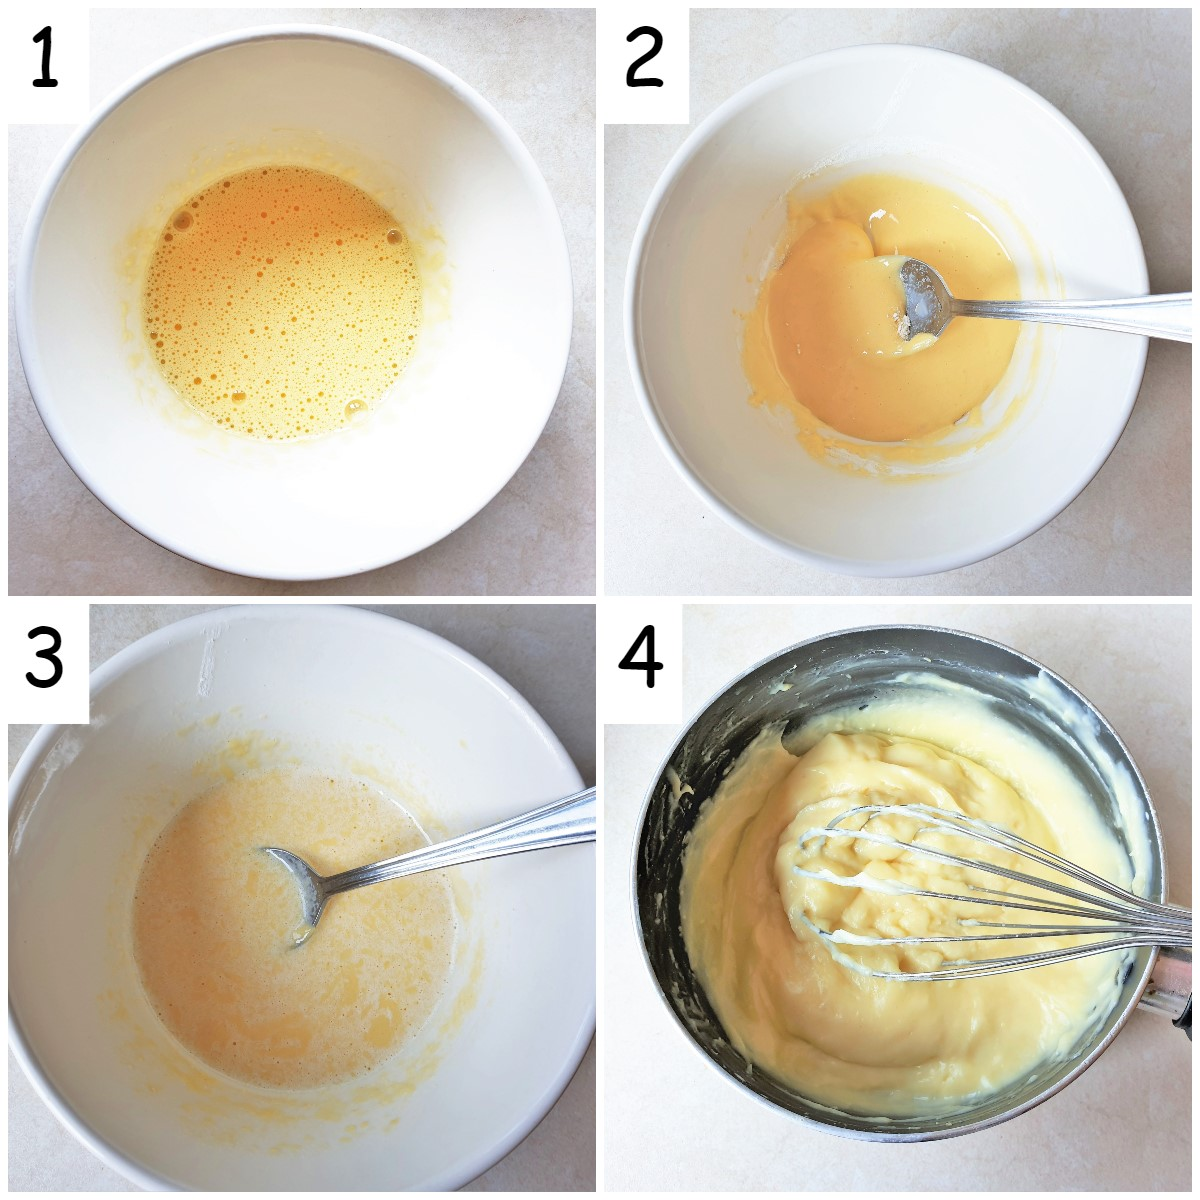 Steps for mixing the custard.